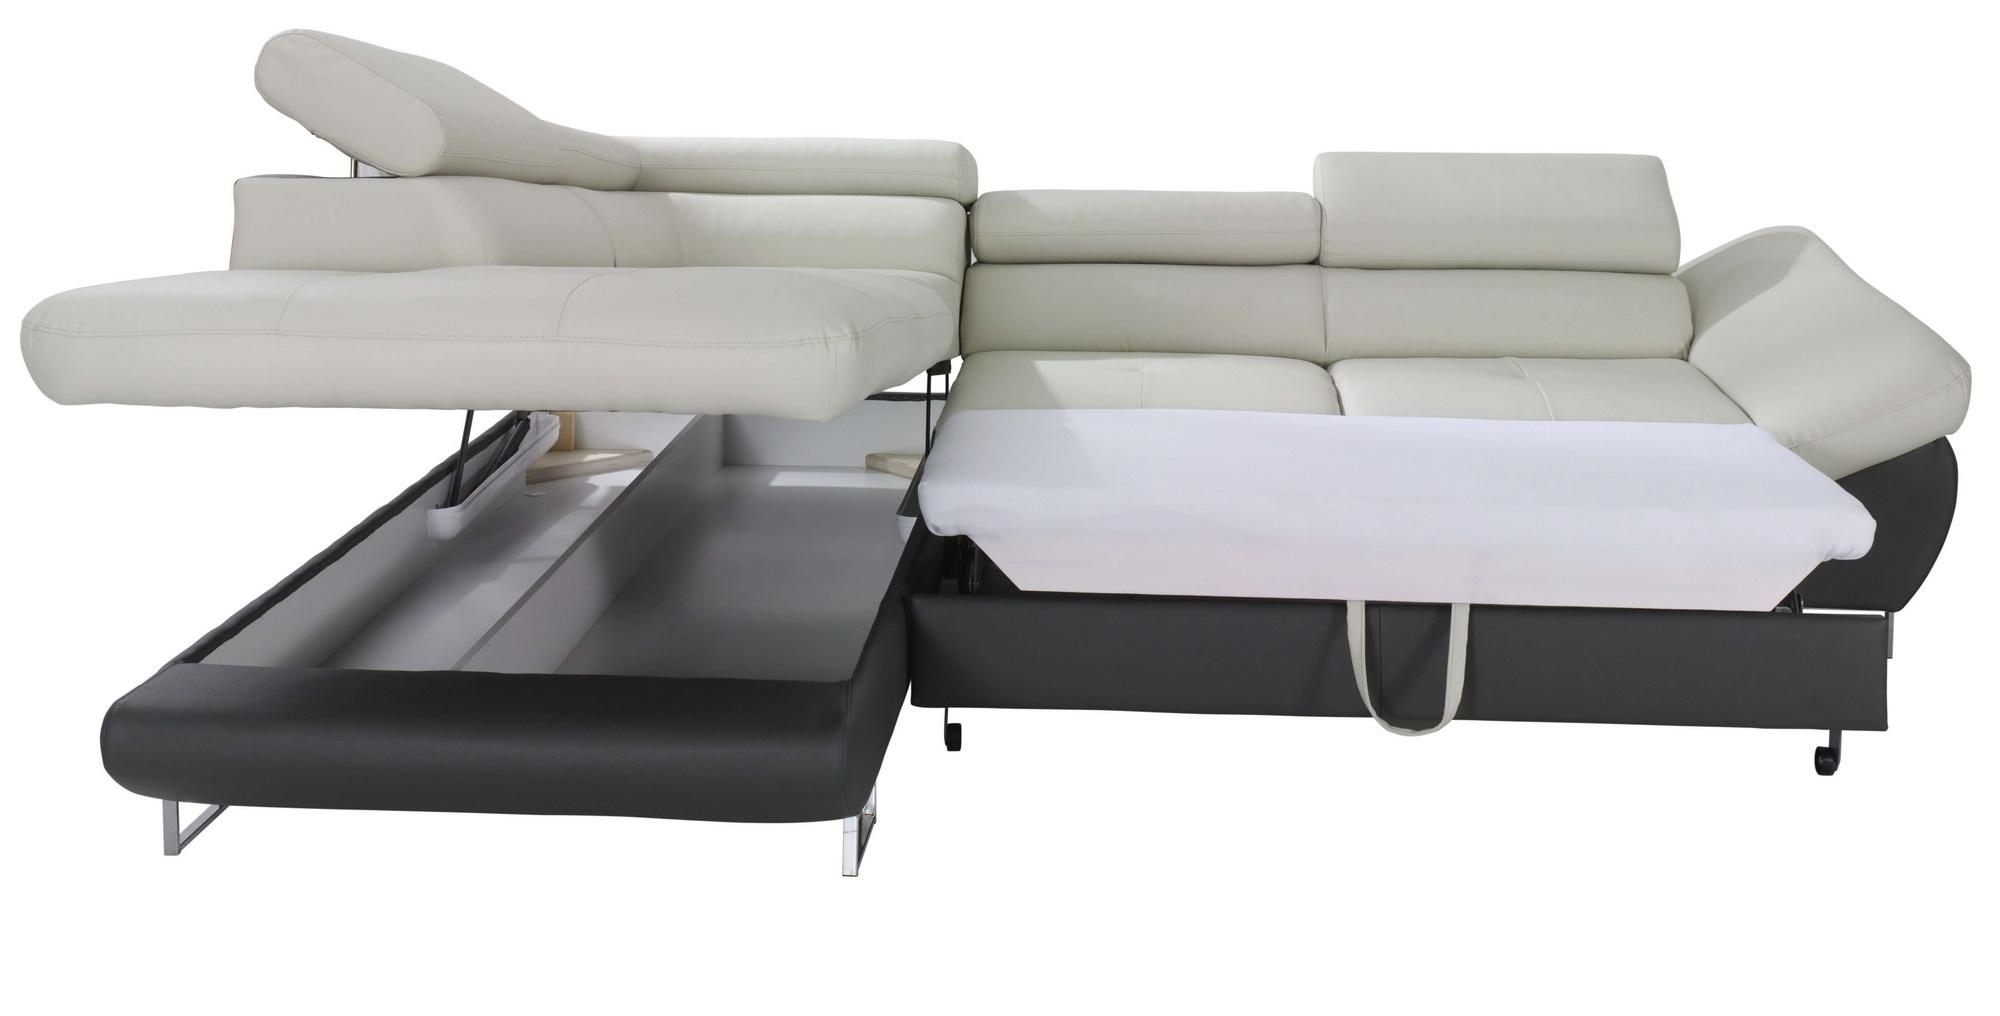 Fabio Sectional Sofa Sleeper With Storage, Creative Furniture Pertaining To Sectional Sofas With Sleeper And Chaise (View 20 of 21)